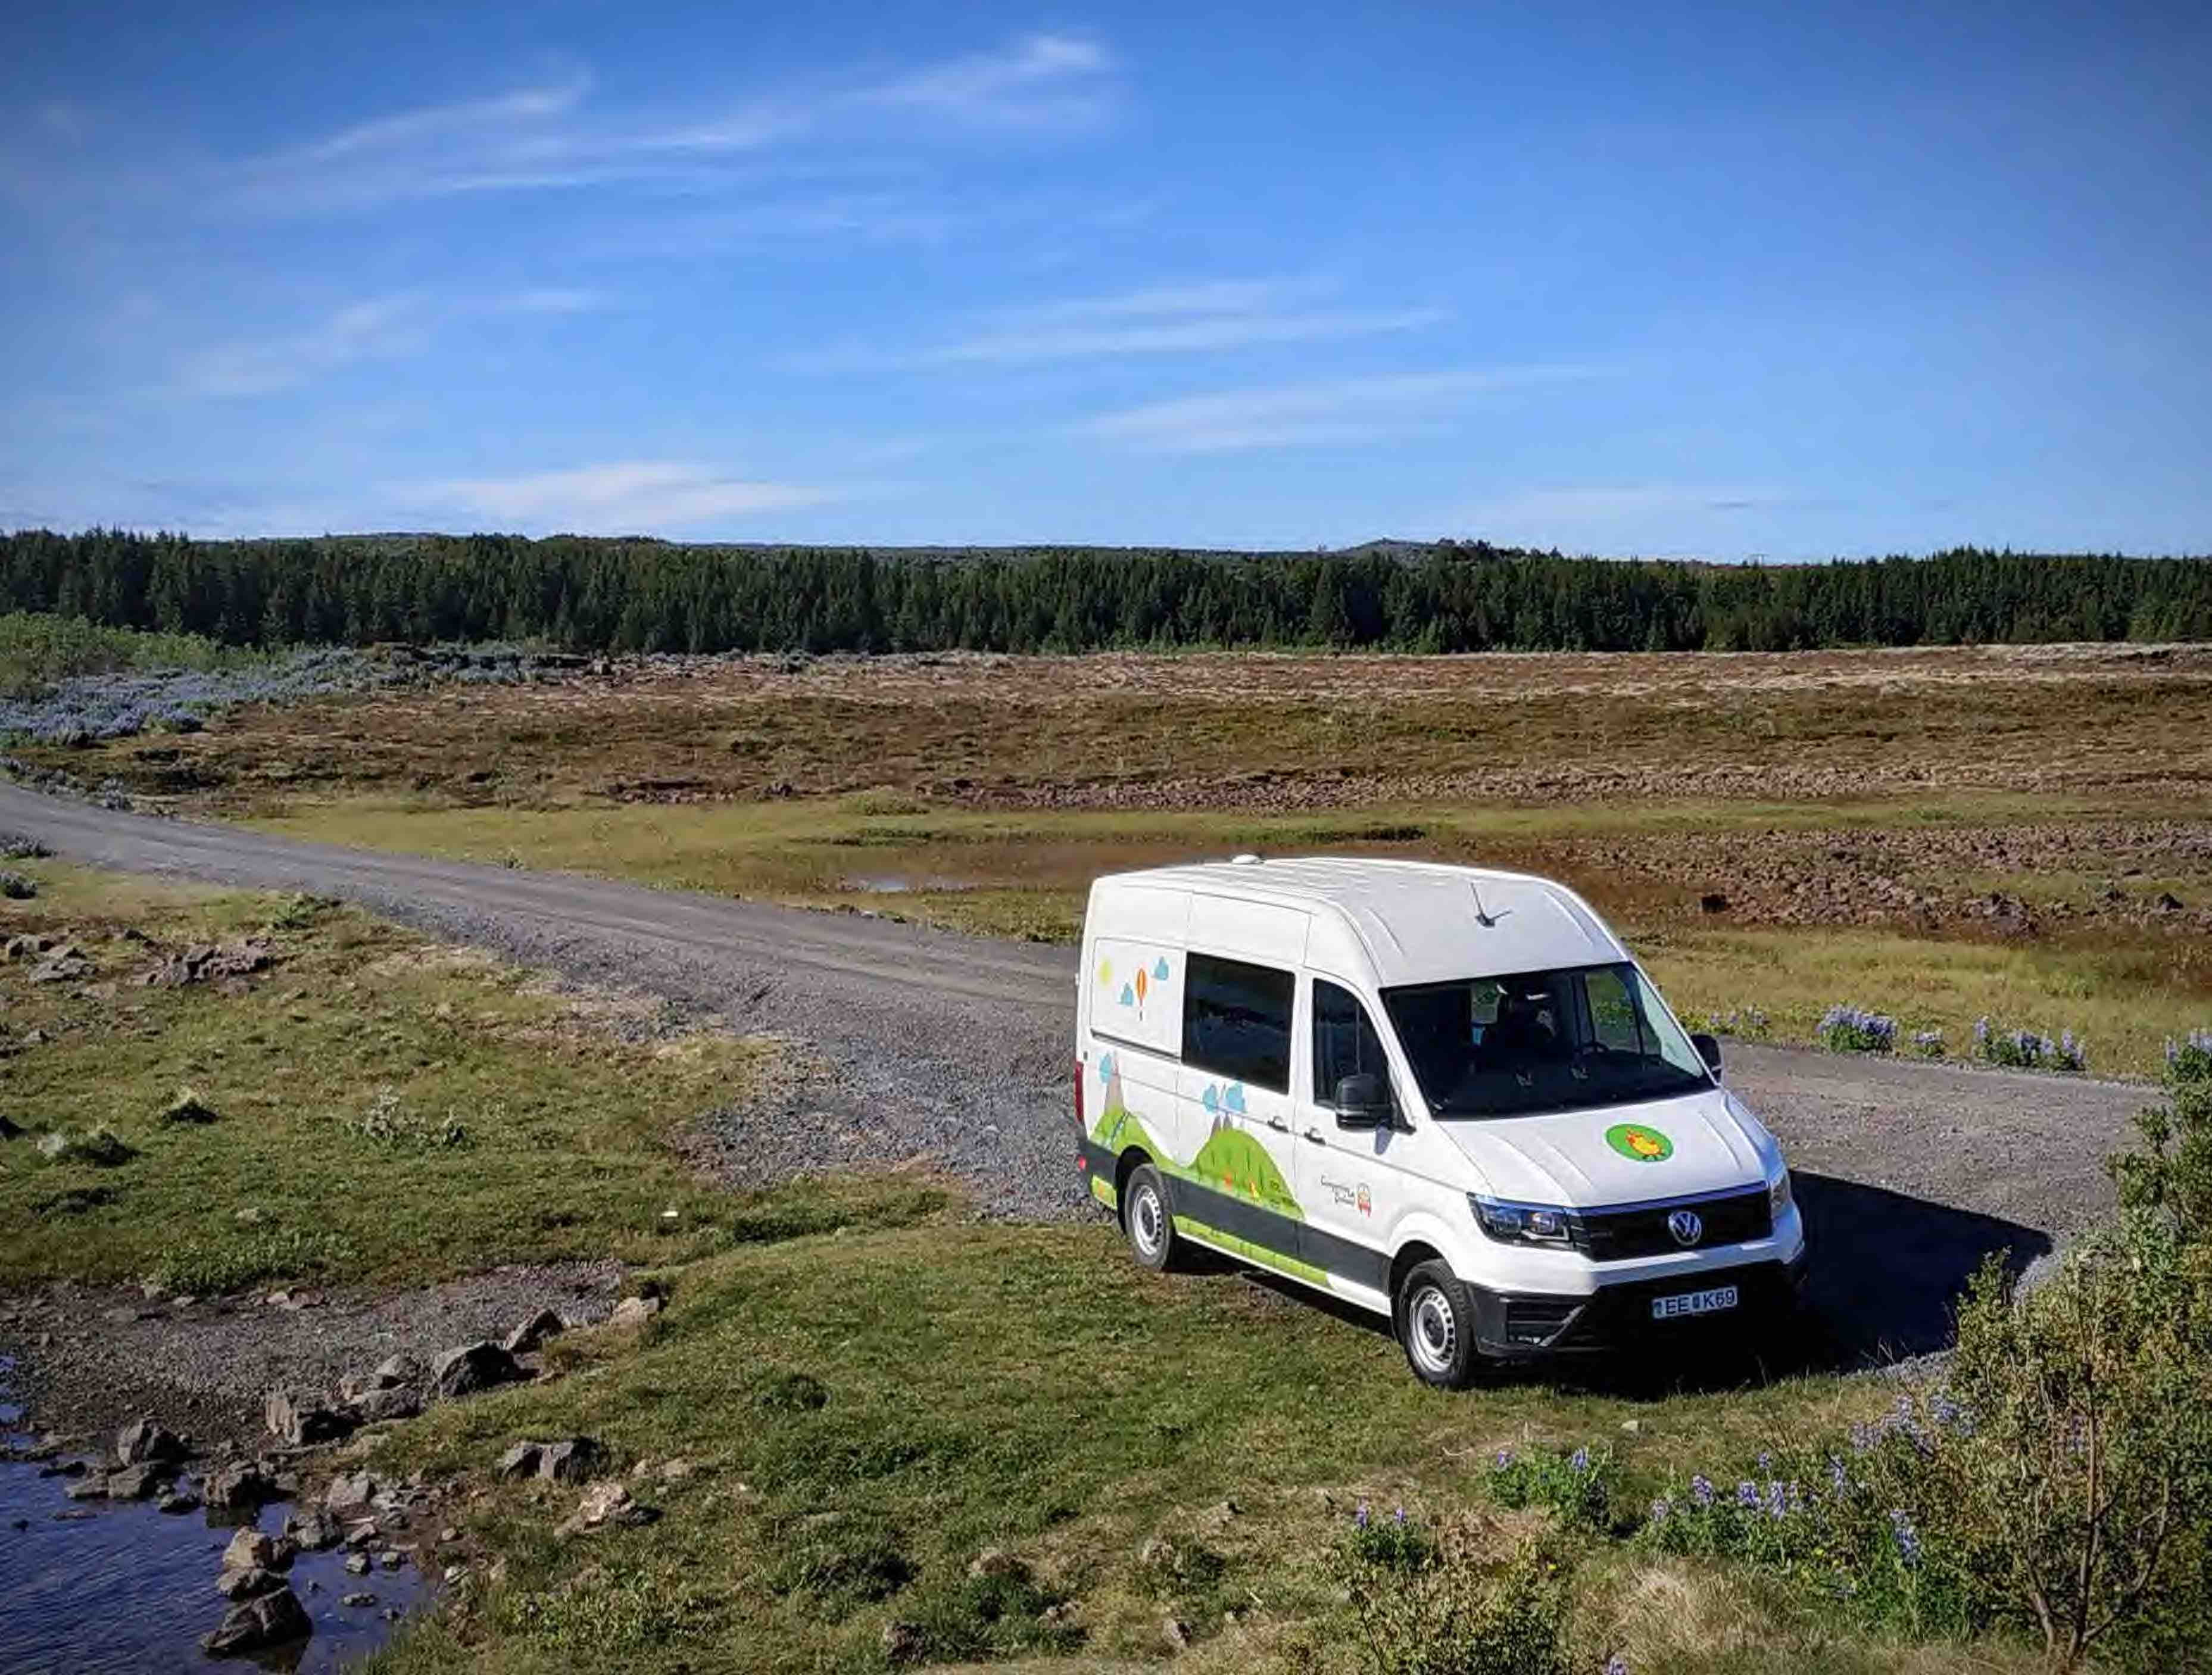 Campervan 4x4 VW Crafter